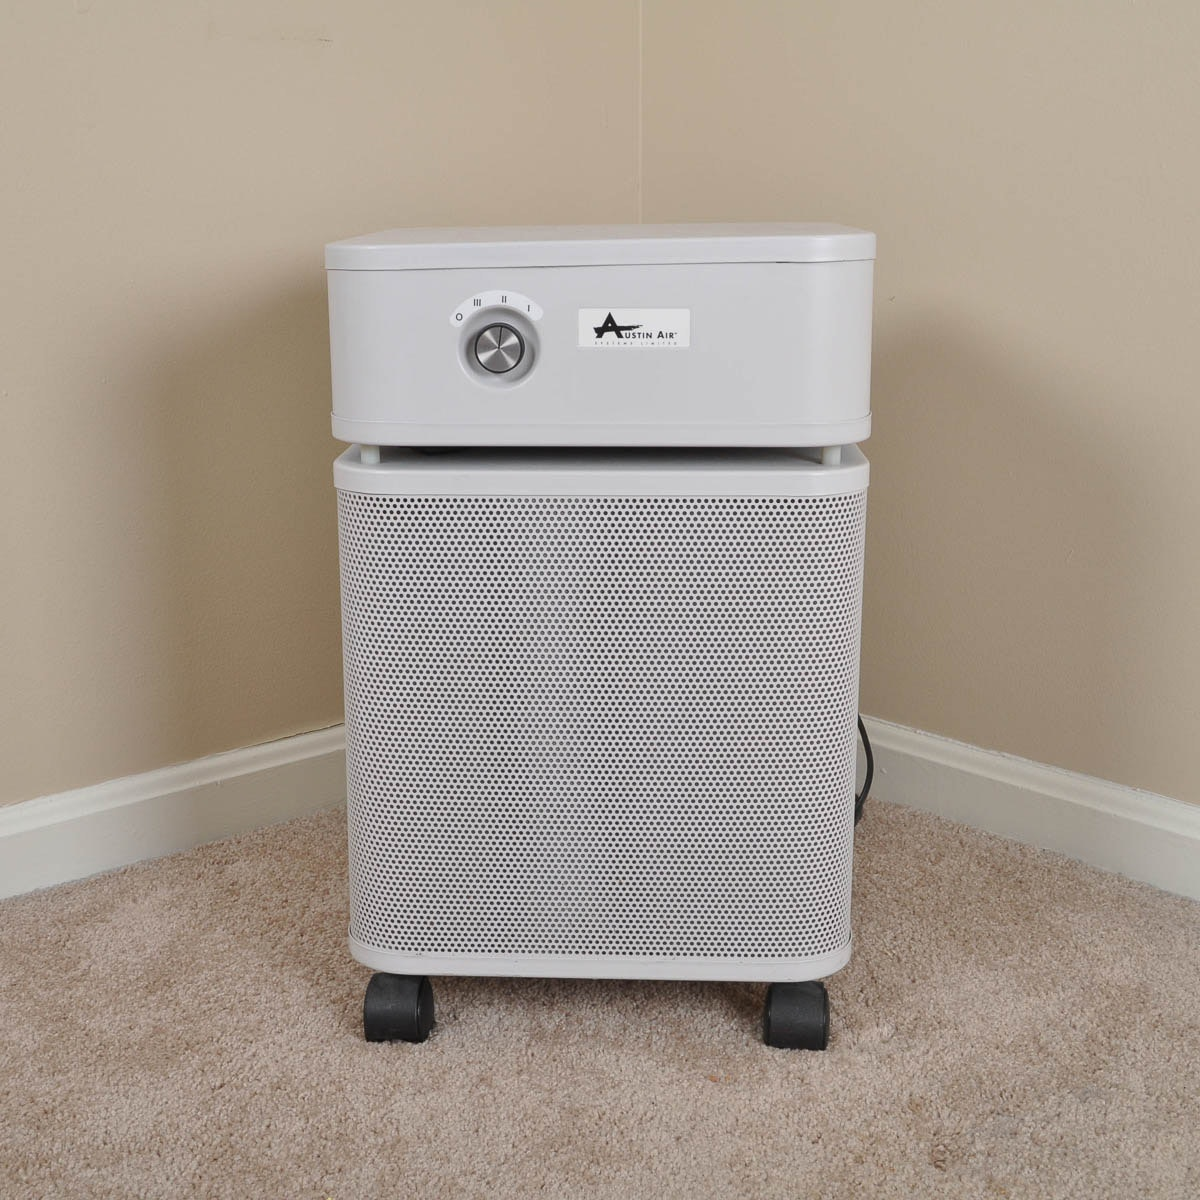 Air Purifier from Austin Air